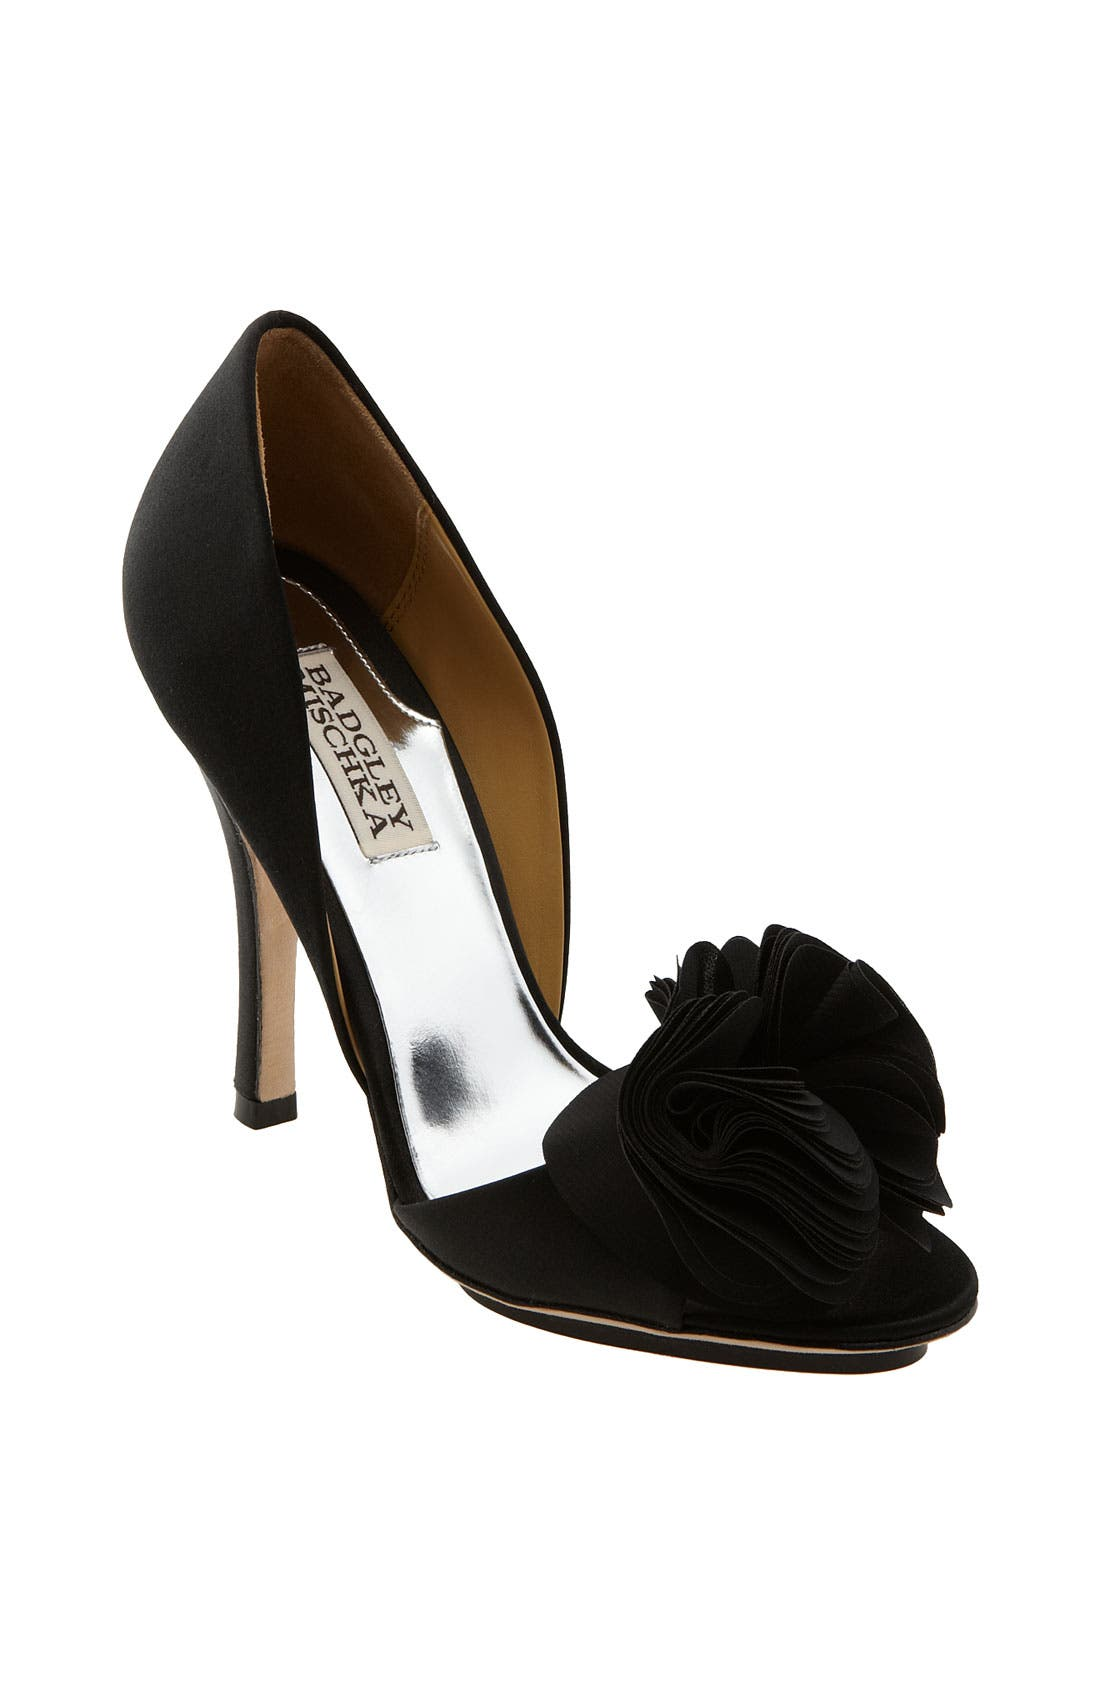 BADGLEY MISCHKA COLLECTION,                             Badgley Mischka 'Randall' Pump,                             Main thumbnail 1, color,                             015